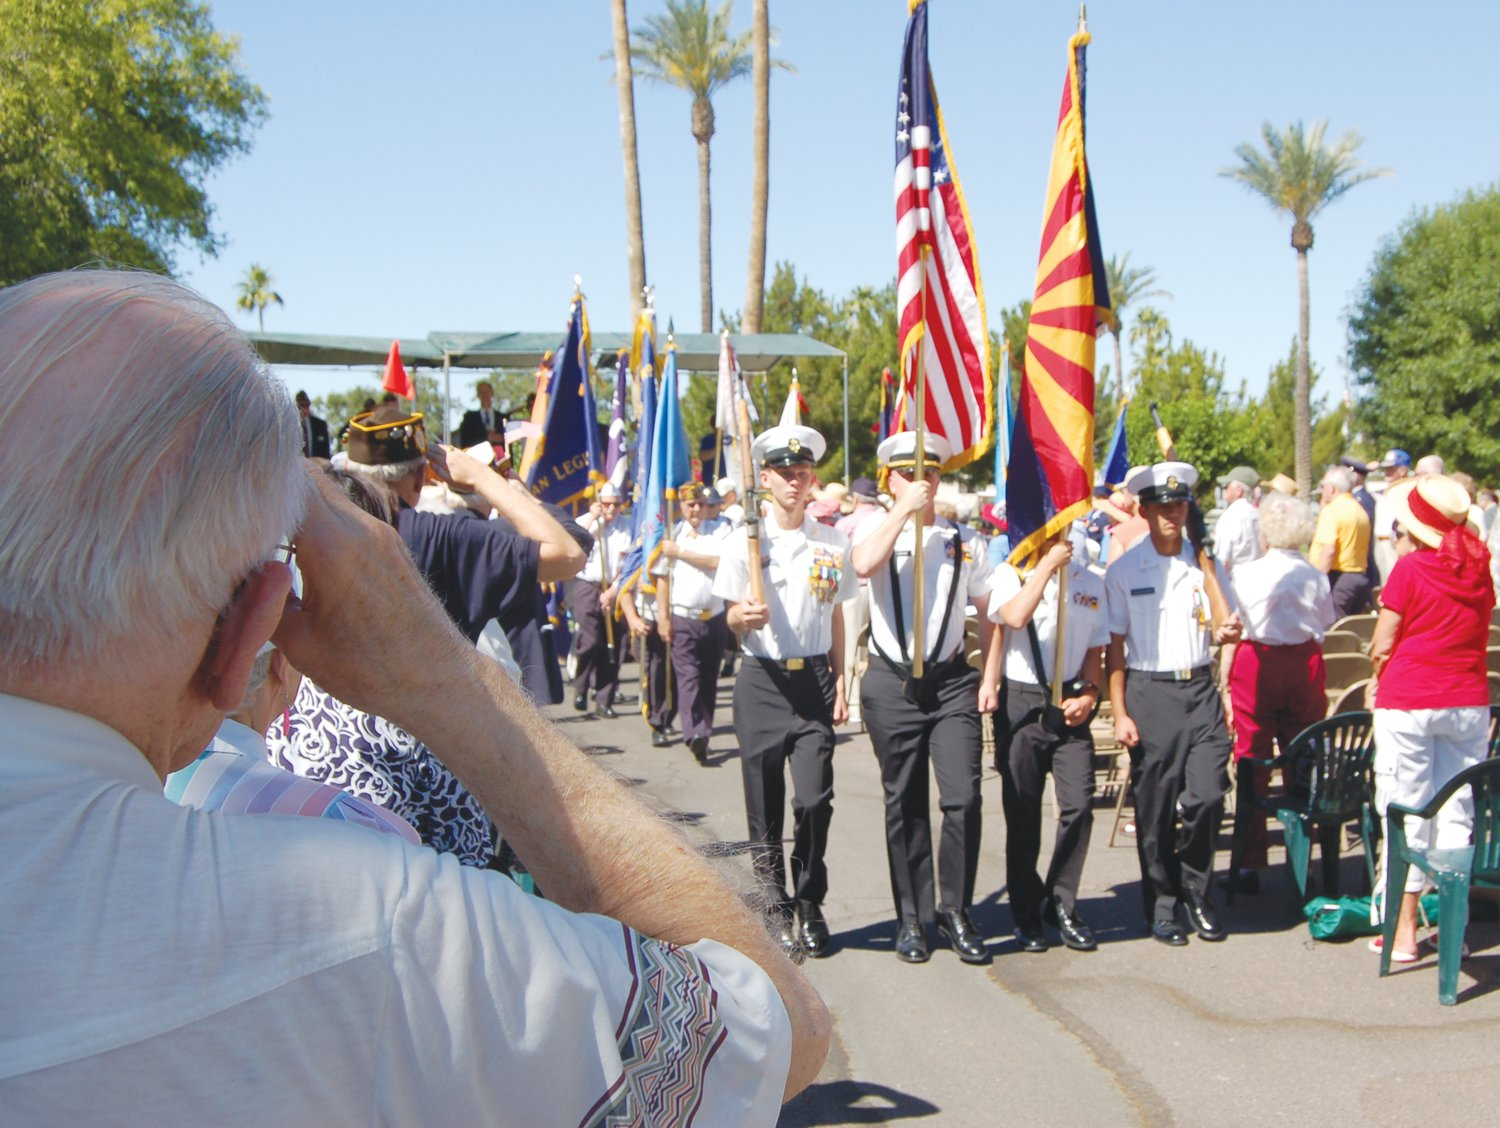 A veteran shows his respect and love of his country as the color guard passes during a Veterans Day ceremony in Sun City.